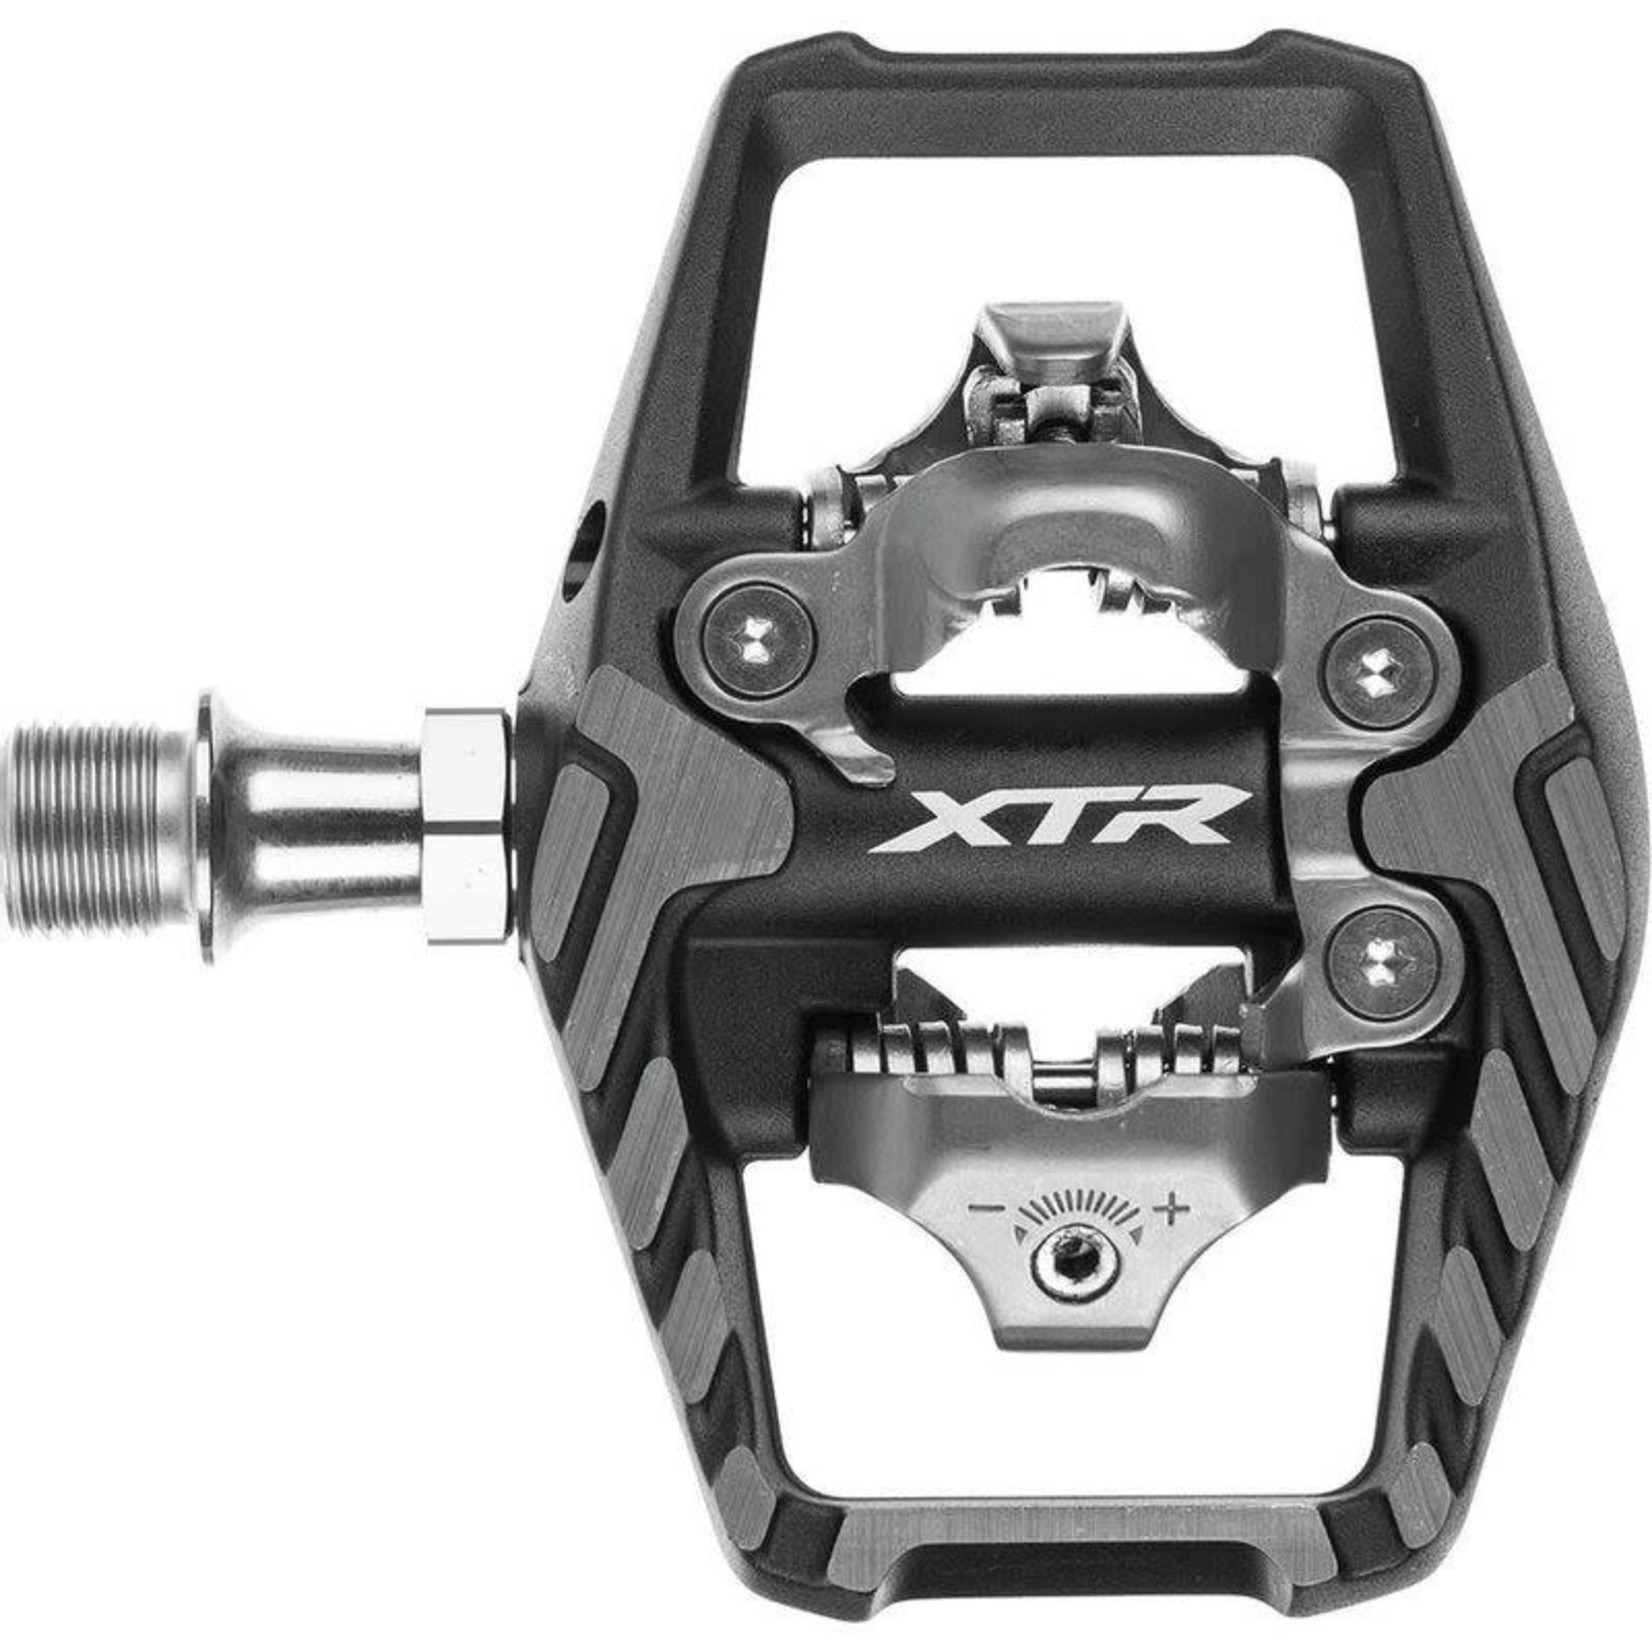 Shimano Shimano XTR M9120 Trail SPD Pedals and Cleats